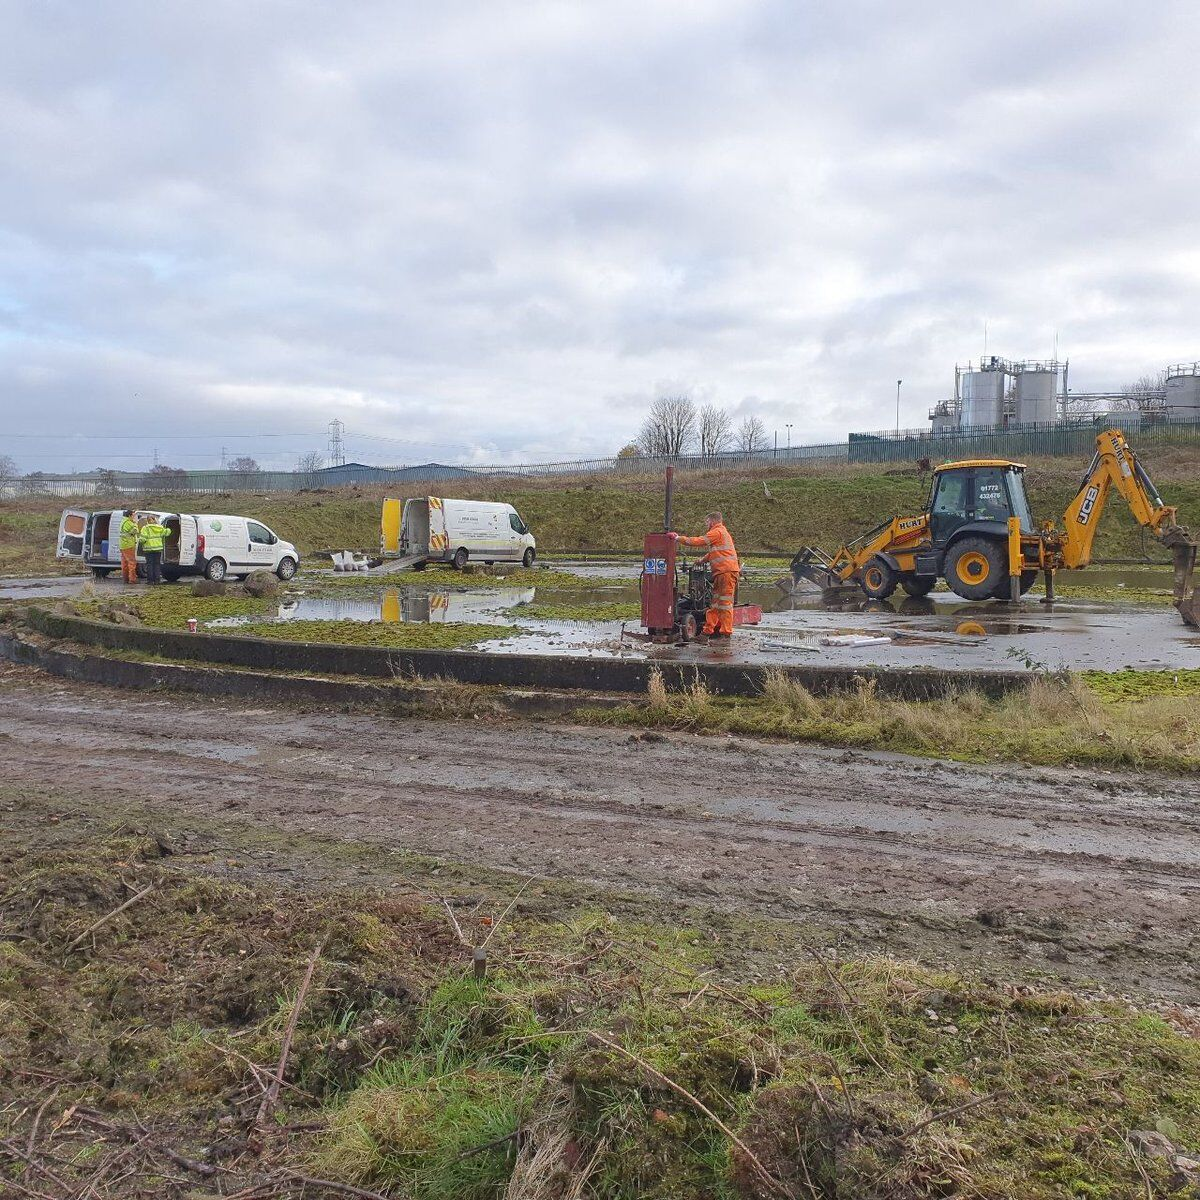 First day of large site investigation on part of former Darwen Paper Mill